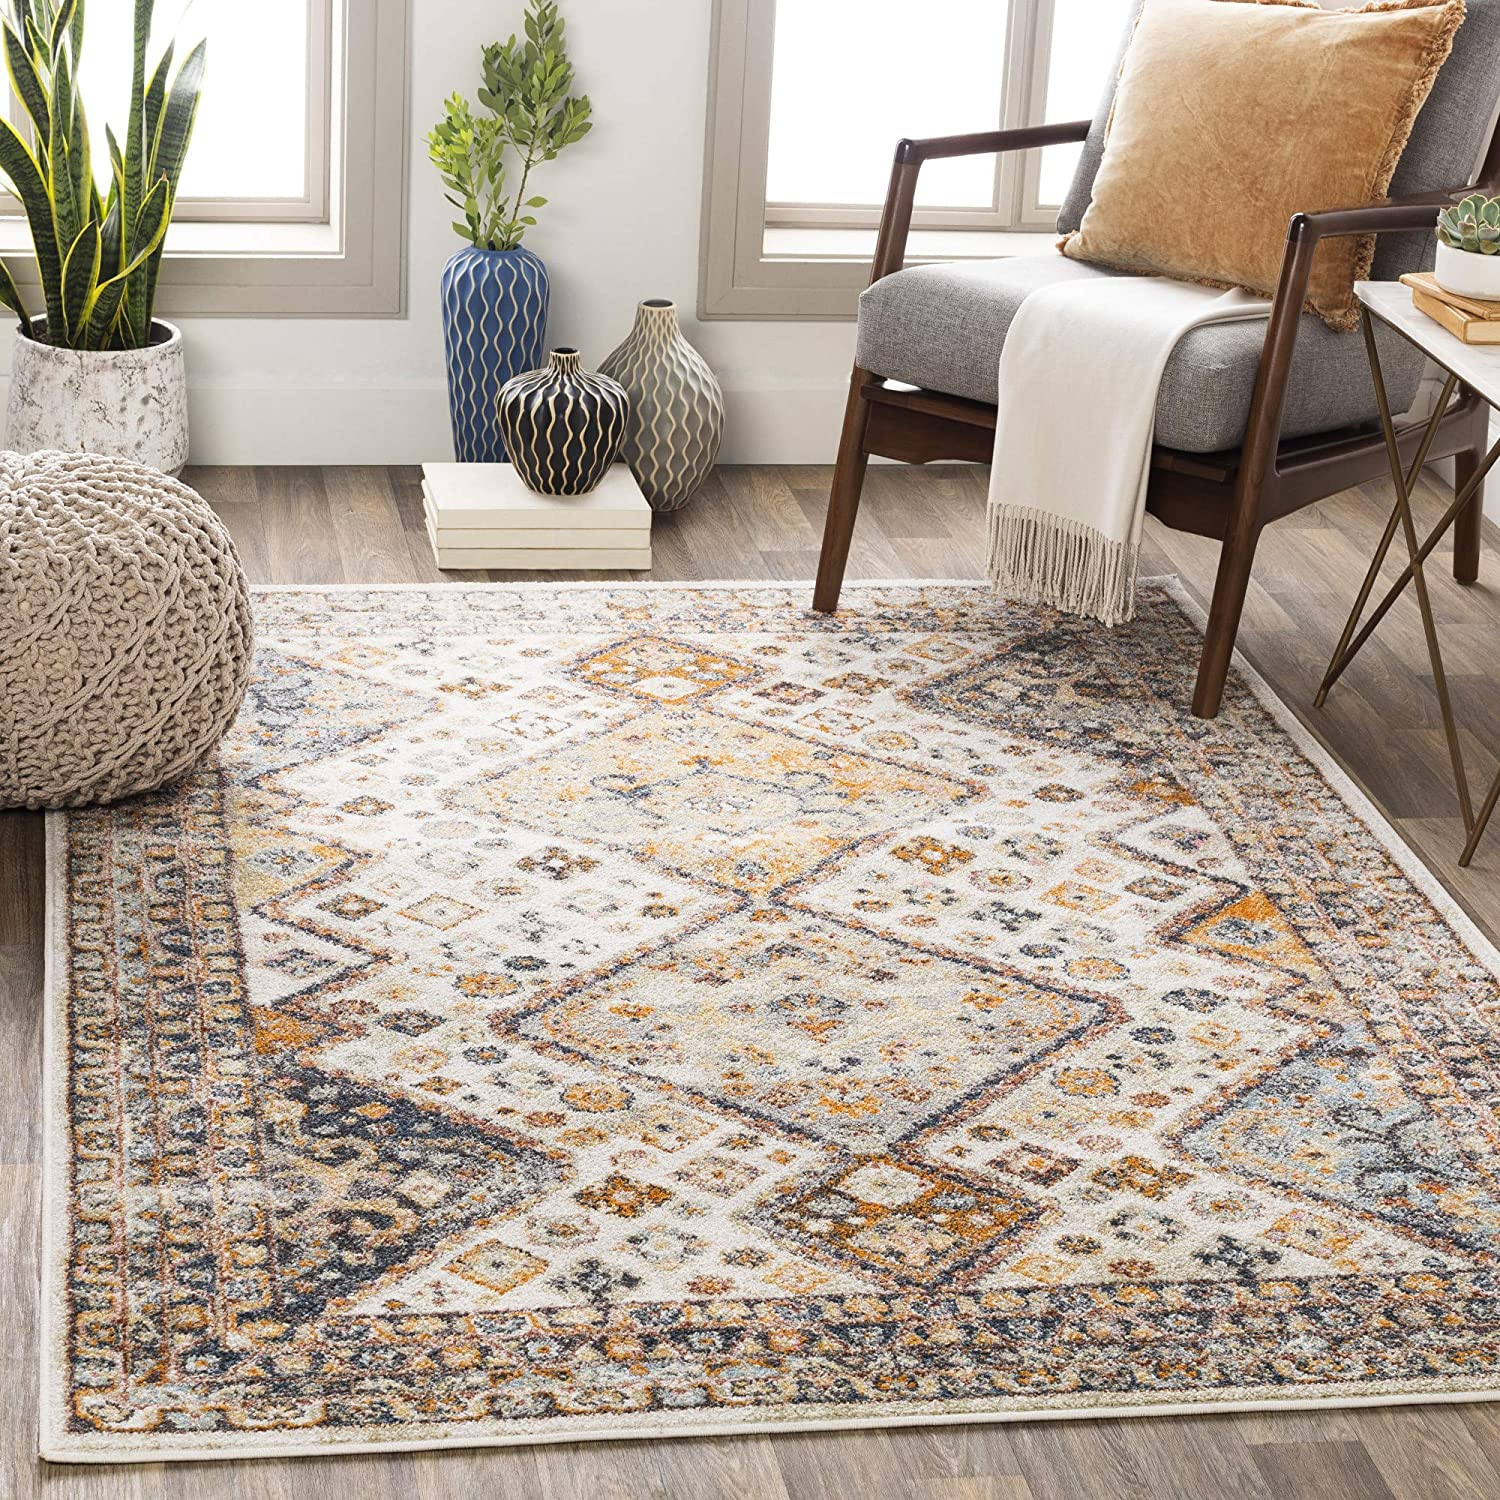 Artistic Weavers Low Max 47% OFF price Freigh Beige Area Rug 10'3